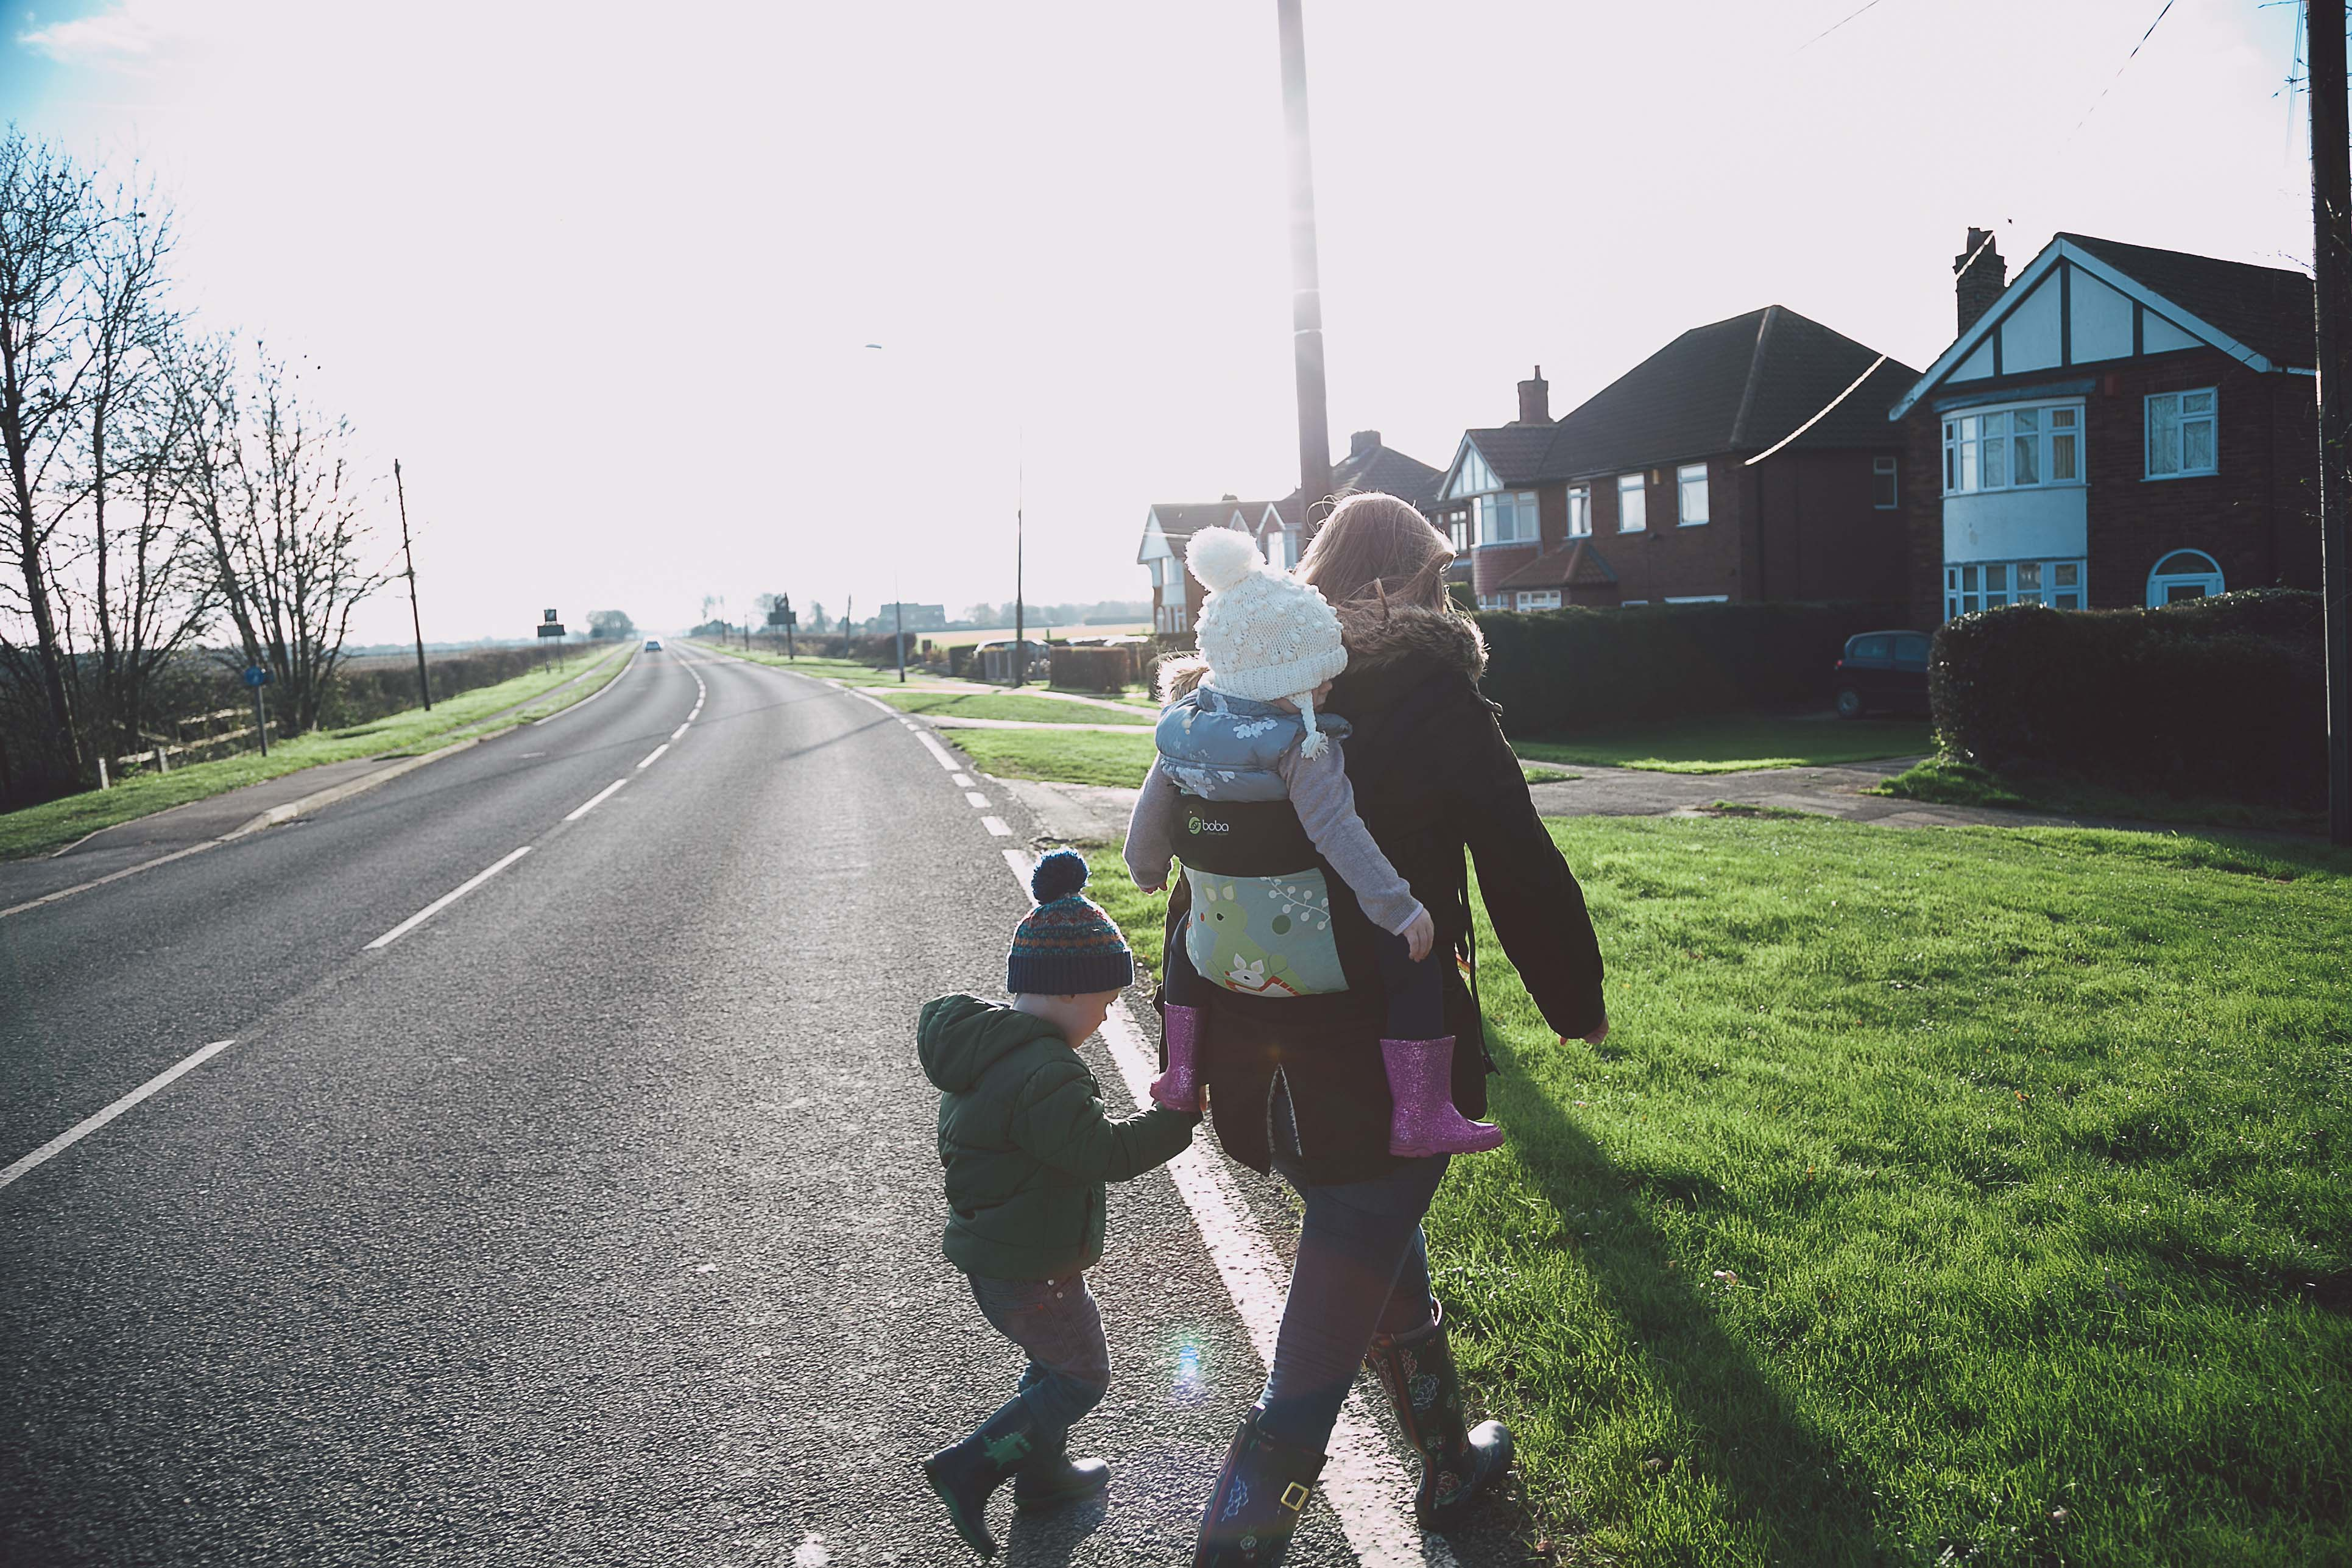 A Family walk down Viking Way, Lincoln. Used as the featured image